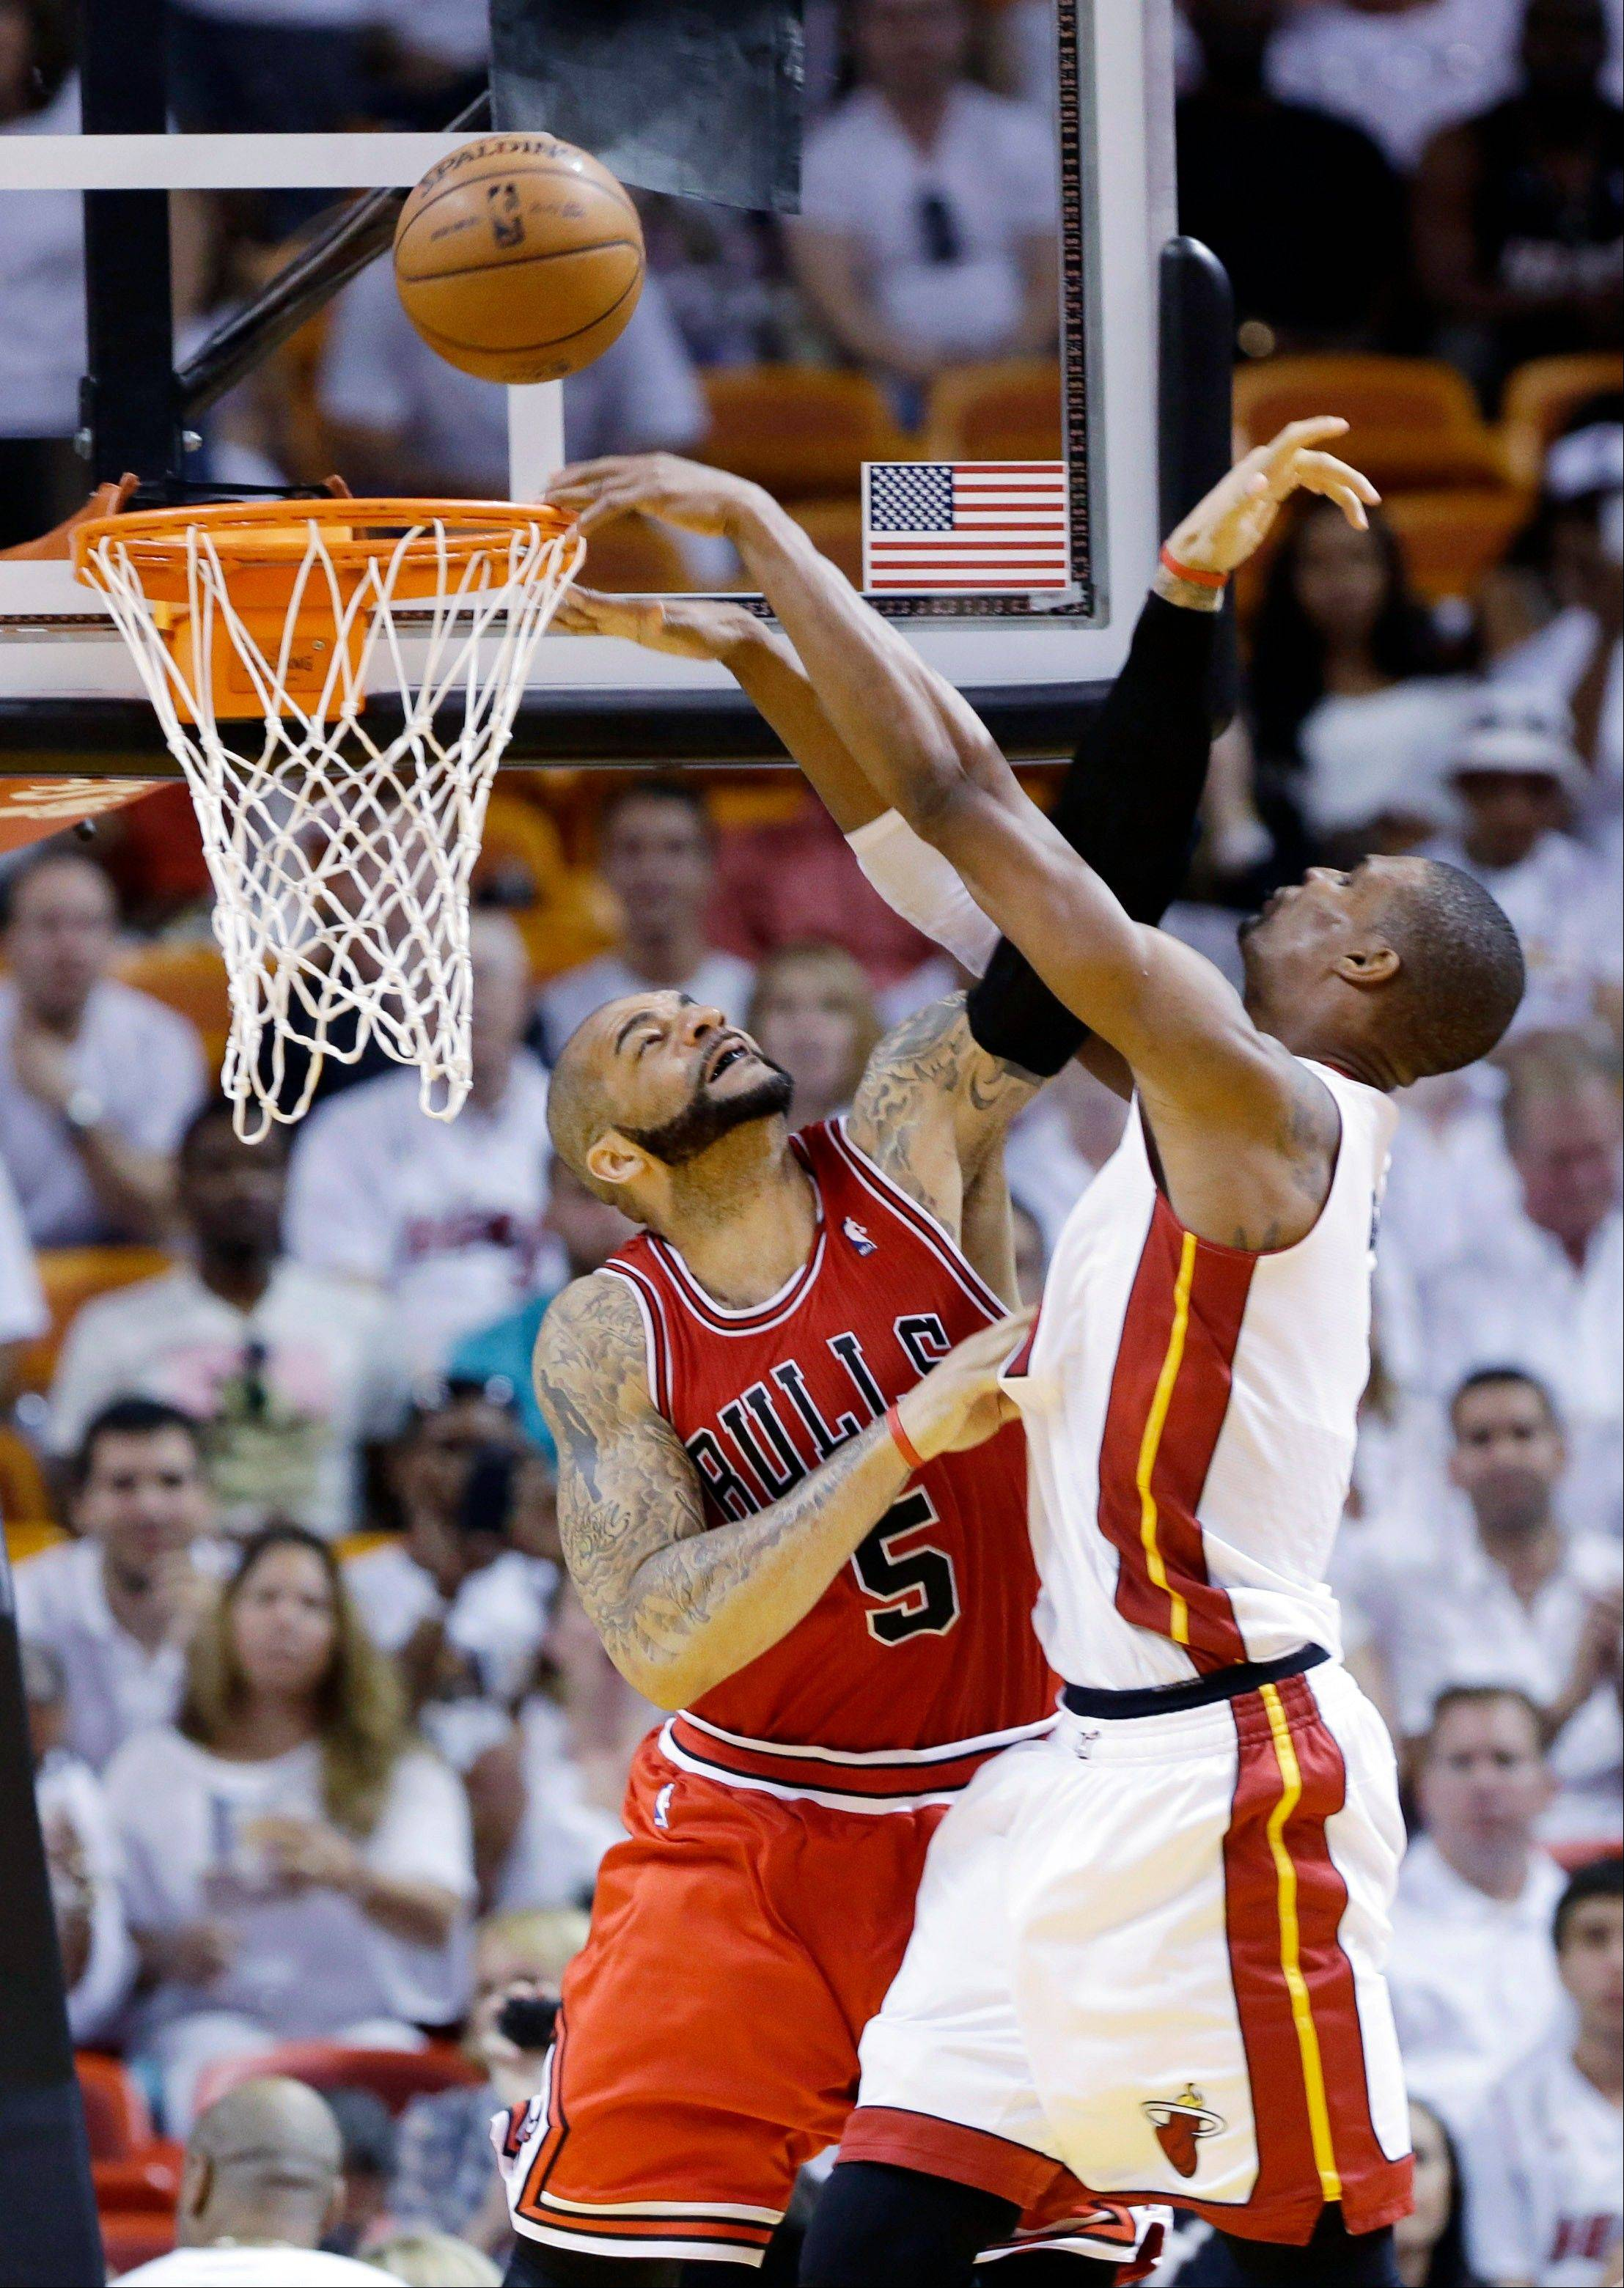 Miami Heat center Chris Bosh, right, is fouled by Chicago Bulls forward Carlos Boozer (5) as he goes up for a shot during the second half of Game 2 of their NBA basketball playoff series in the Eastern Conference semifinals, Wednesday, May 8, 2013, in Miami.